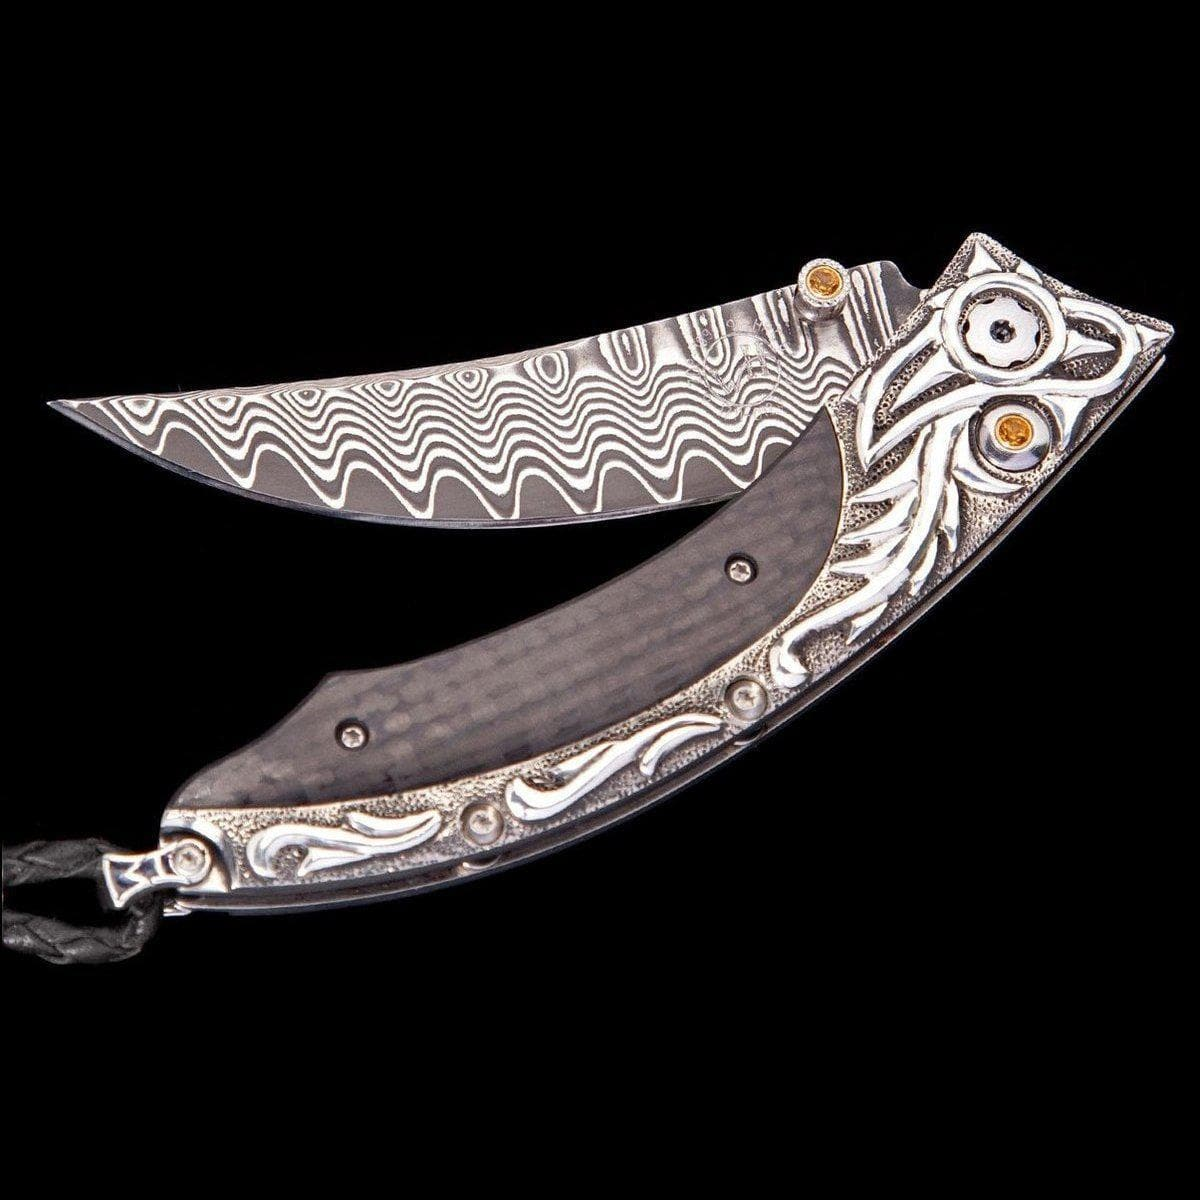 Persian Glide Limited Edition Knife - B11 GLIDE-William Henry-Renee Taylor Gallery